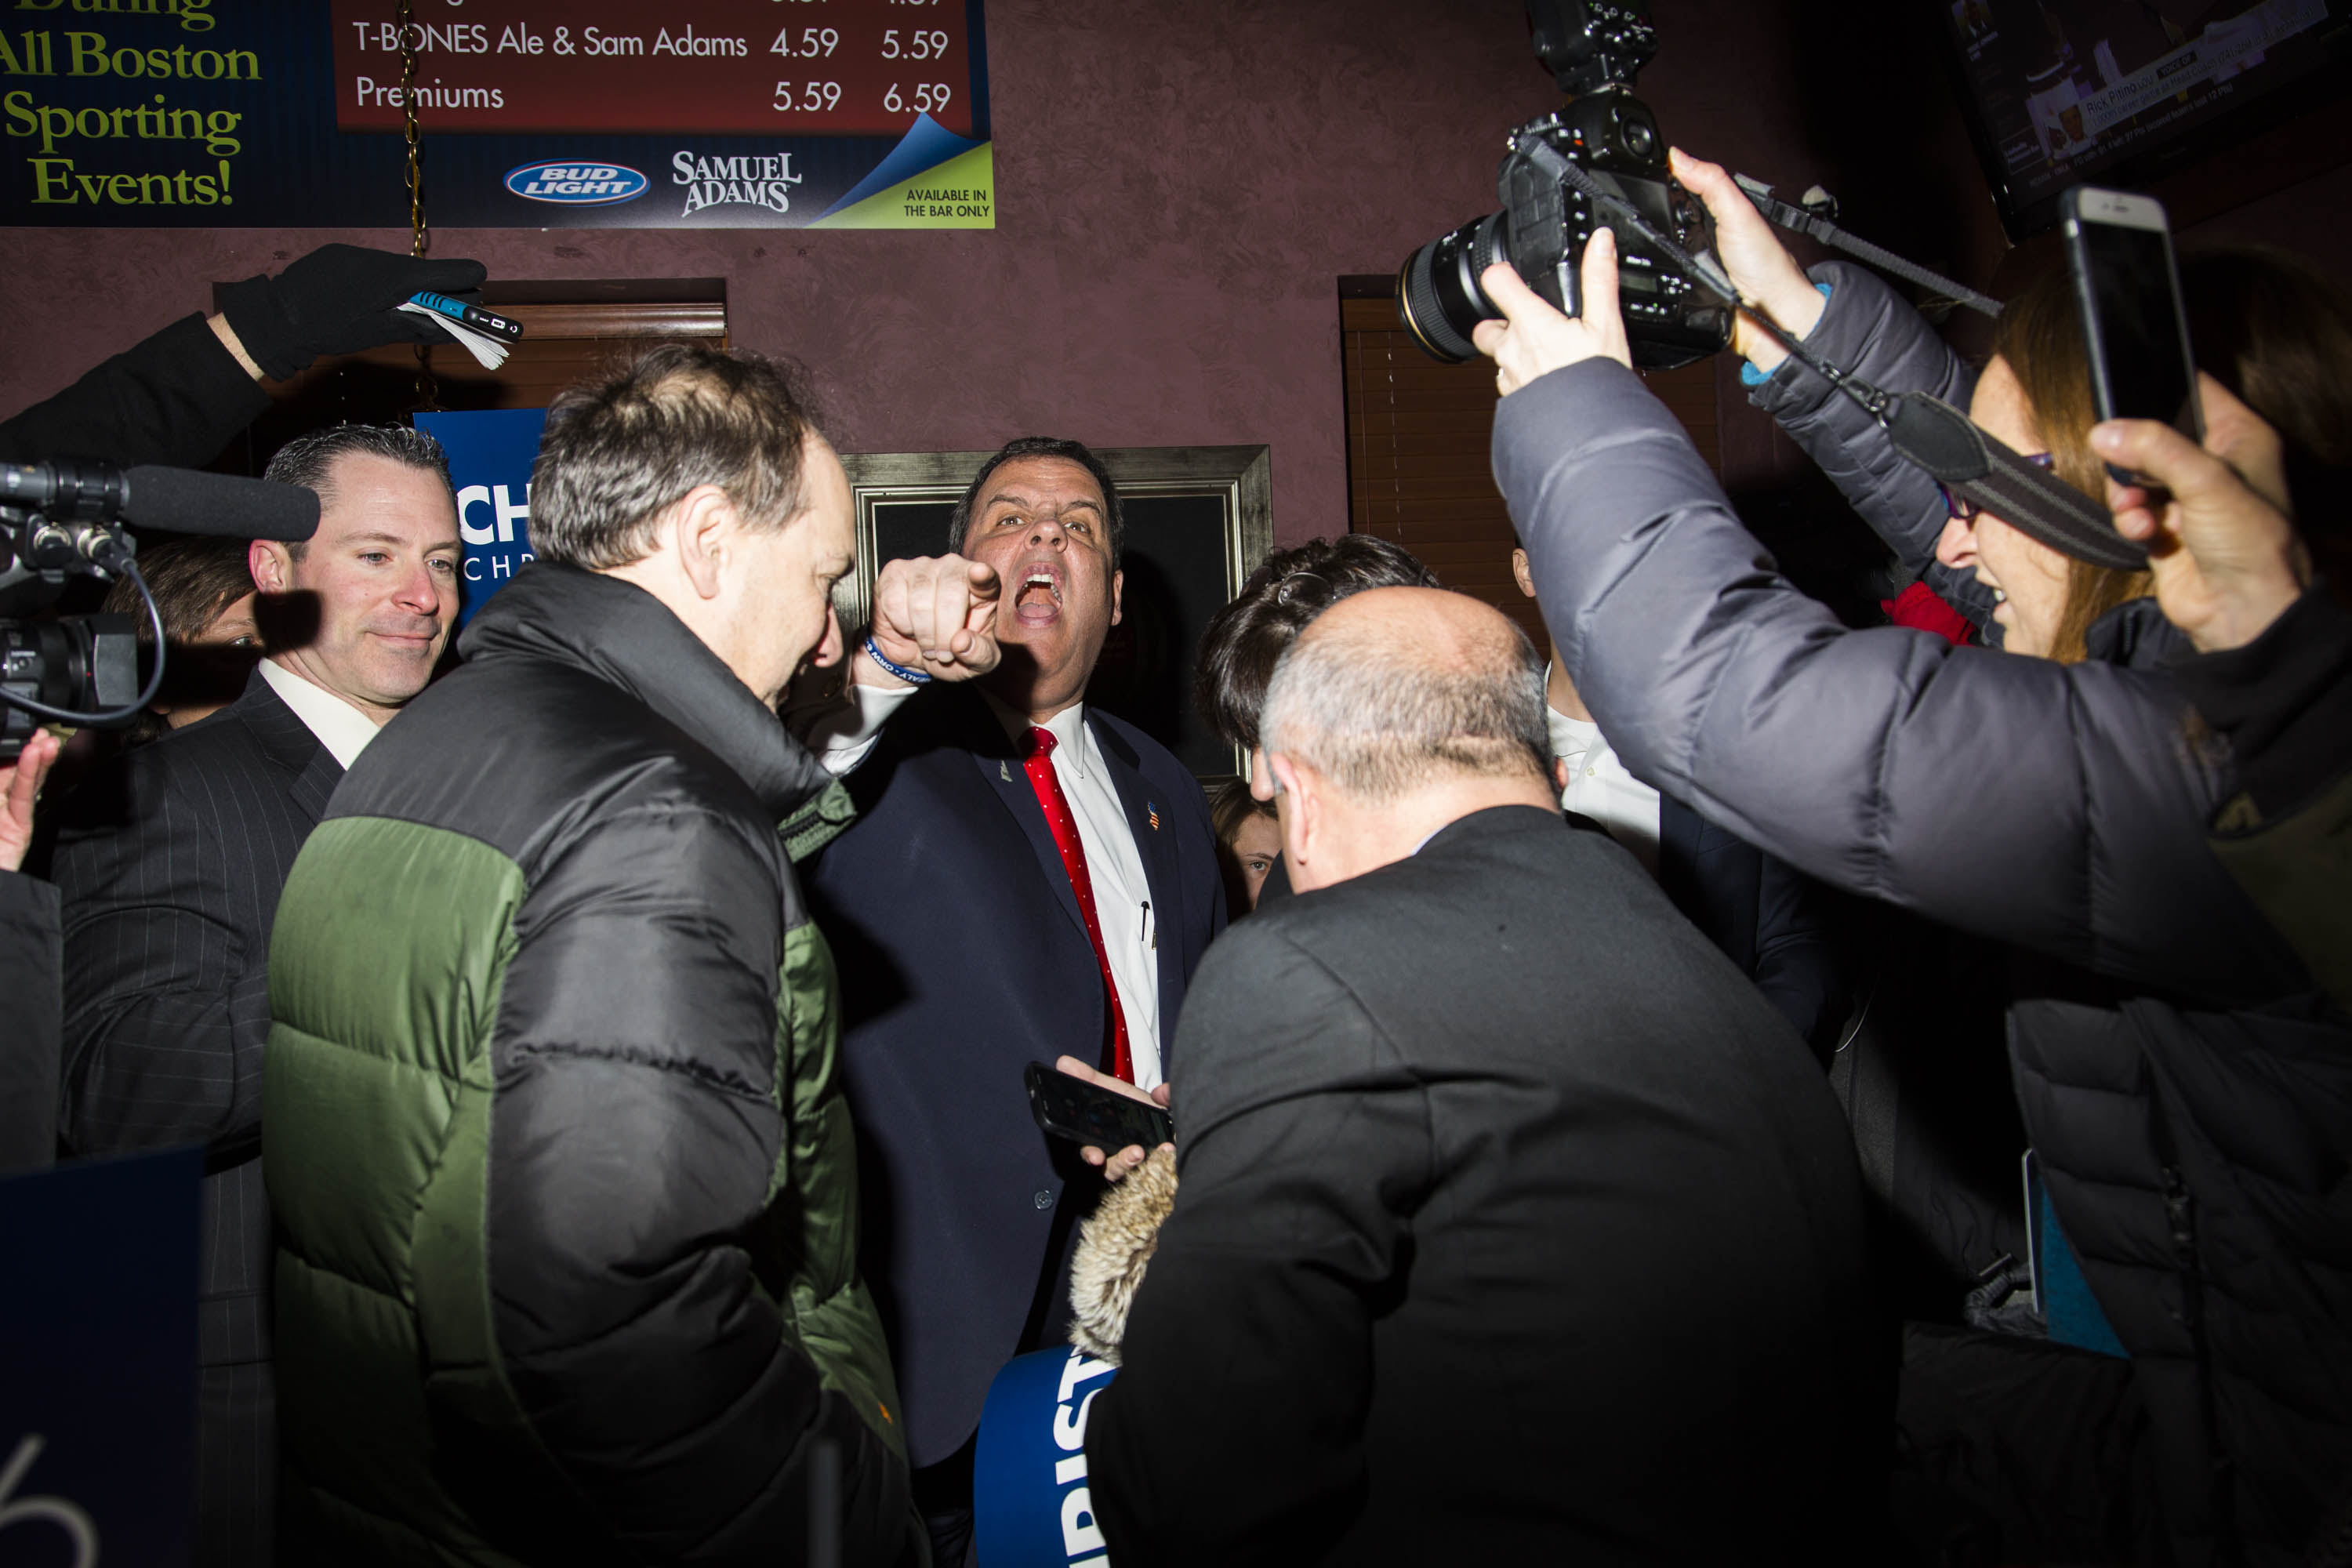 New Jersey Gov. Chris Christie speaks to attendees during a campaign event at the Great American T-Bone Diner in Derry, N.H., on Feb. 9, 2016.